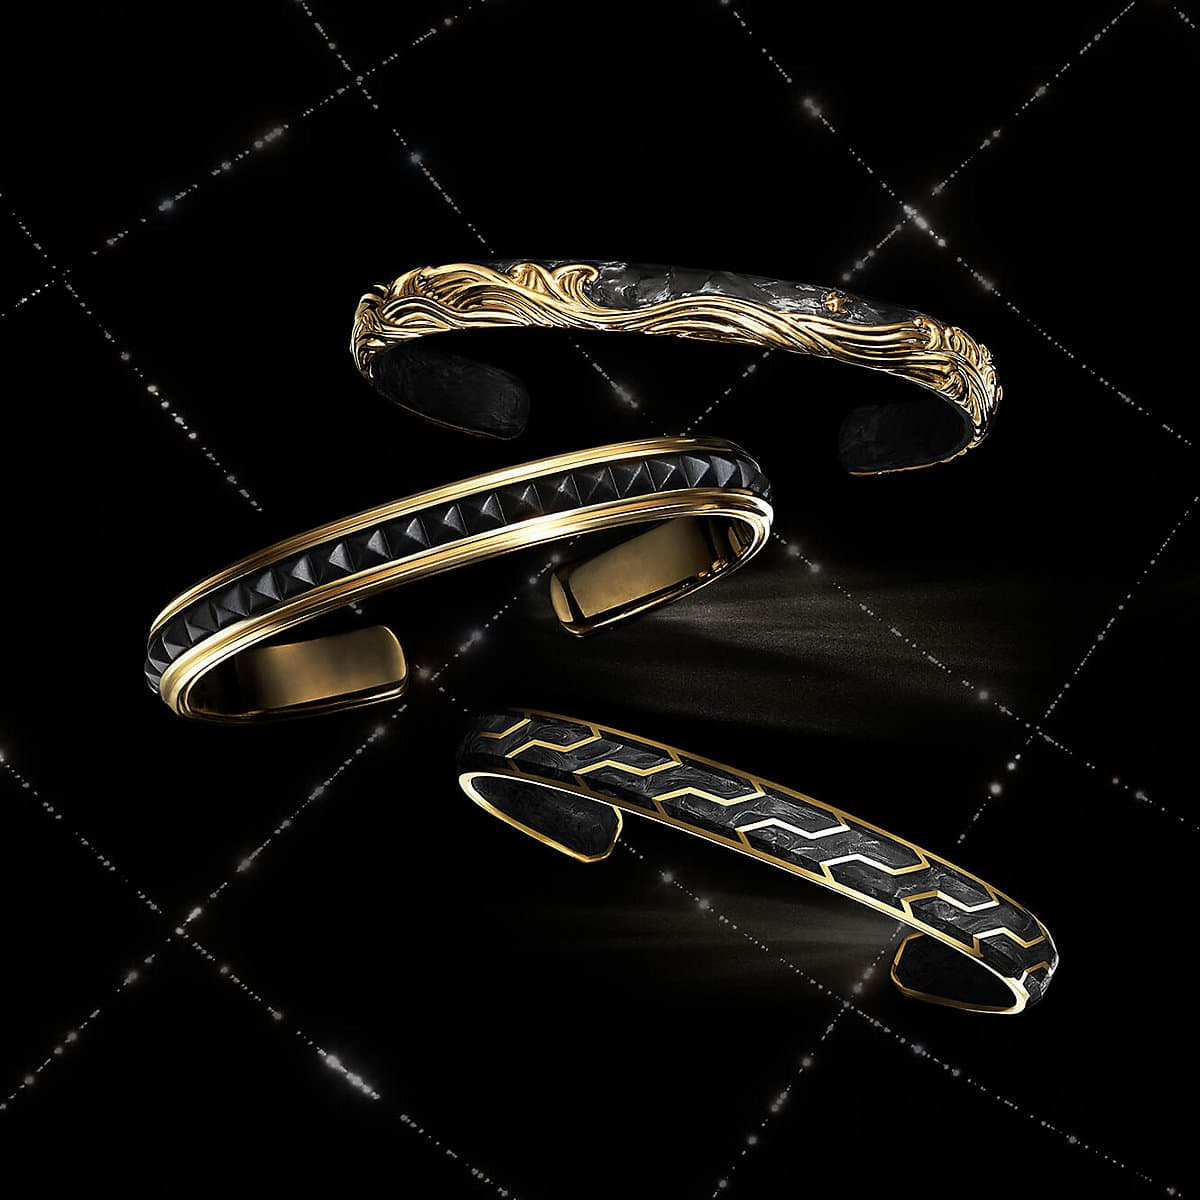 A color photo shows three David Yurman men's bracelets floating in a night sky with white latitude and longitude lines. The jewelry is crafted from 18K yellow gold with or without forged carbon or black titanium.